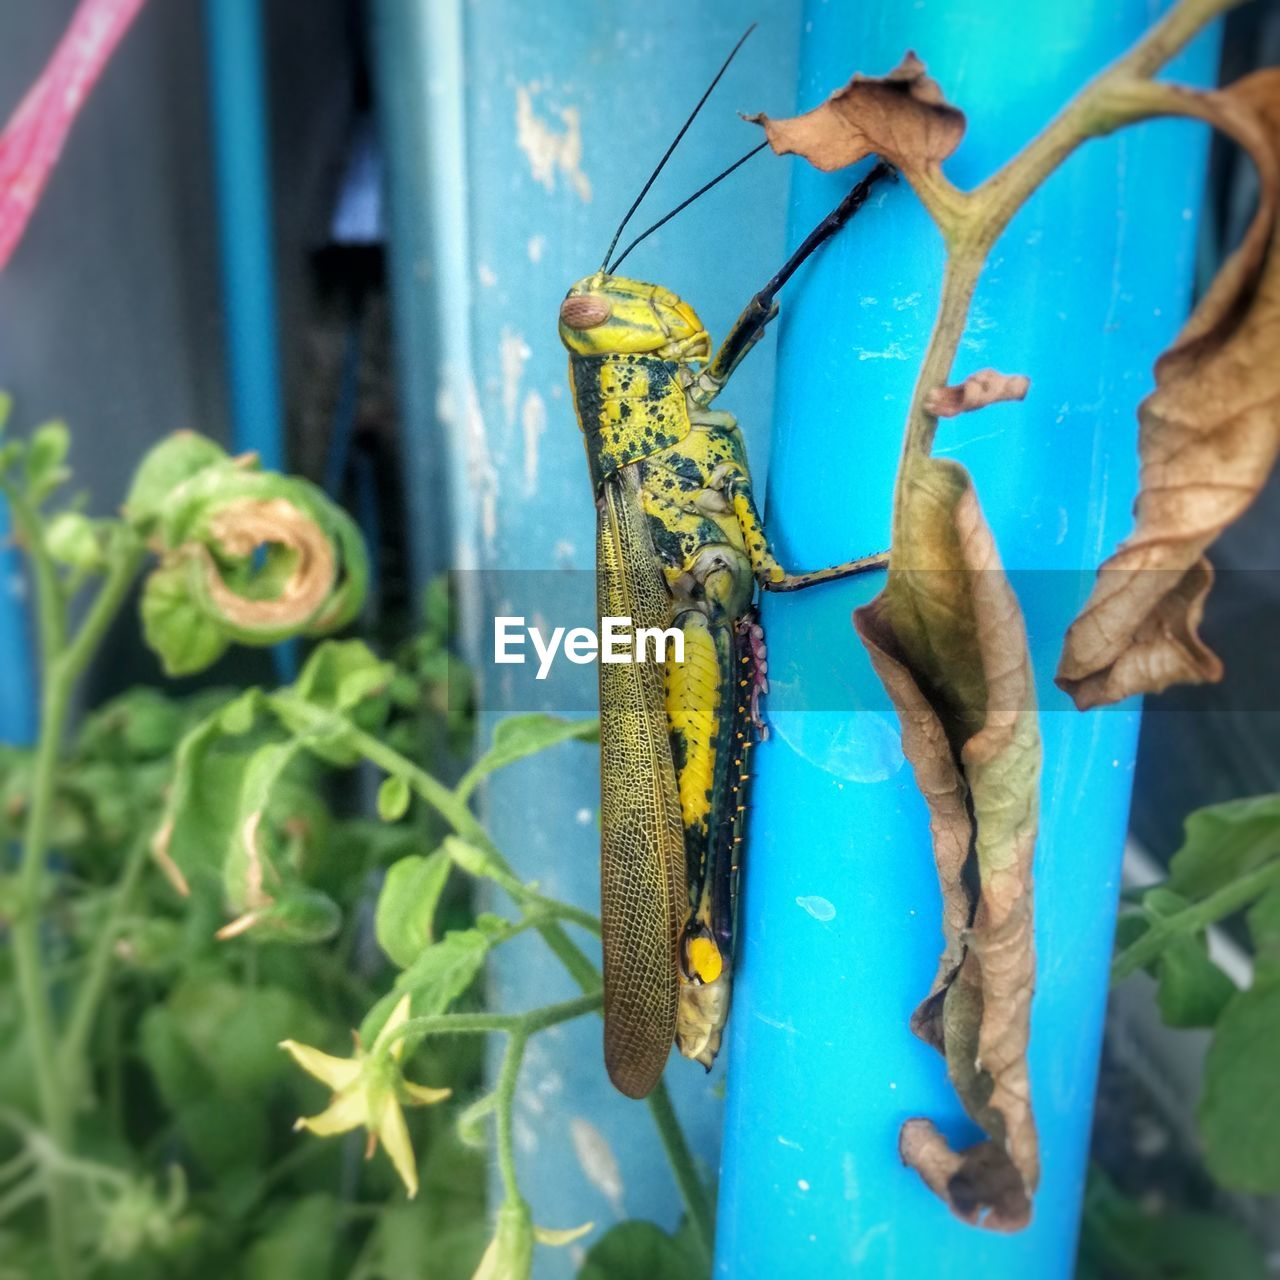 animal, animals in the wild, animal wildlife, animal themes, close-up, green color, no people, day, nature, plant part, plant, leaf, invertebrate, one animal, focus on foreground, insect, blue, metal, outdoors, growth